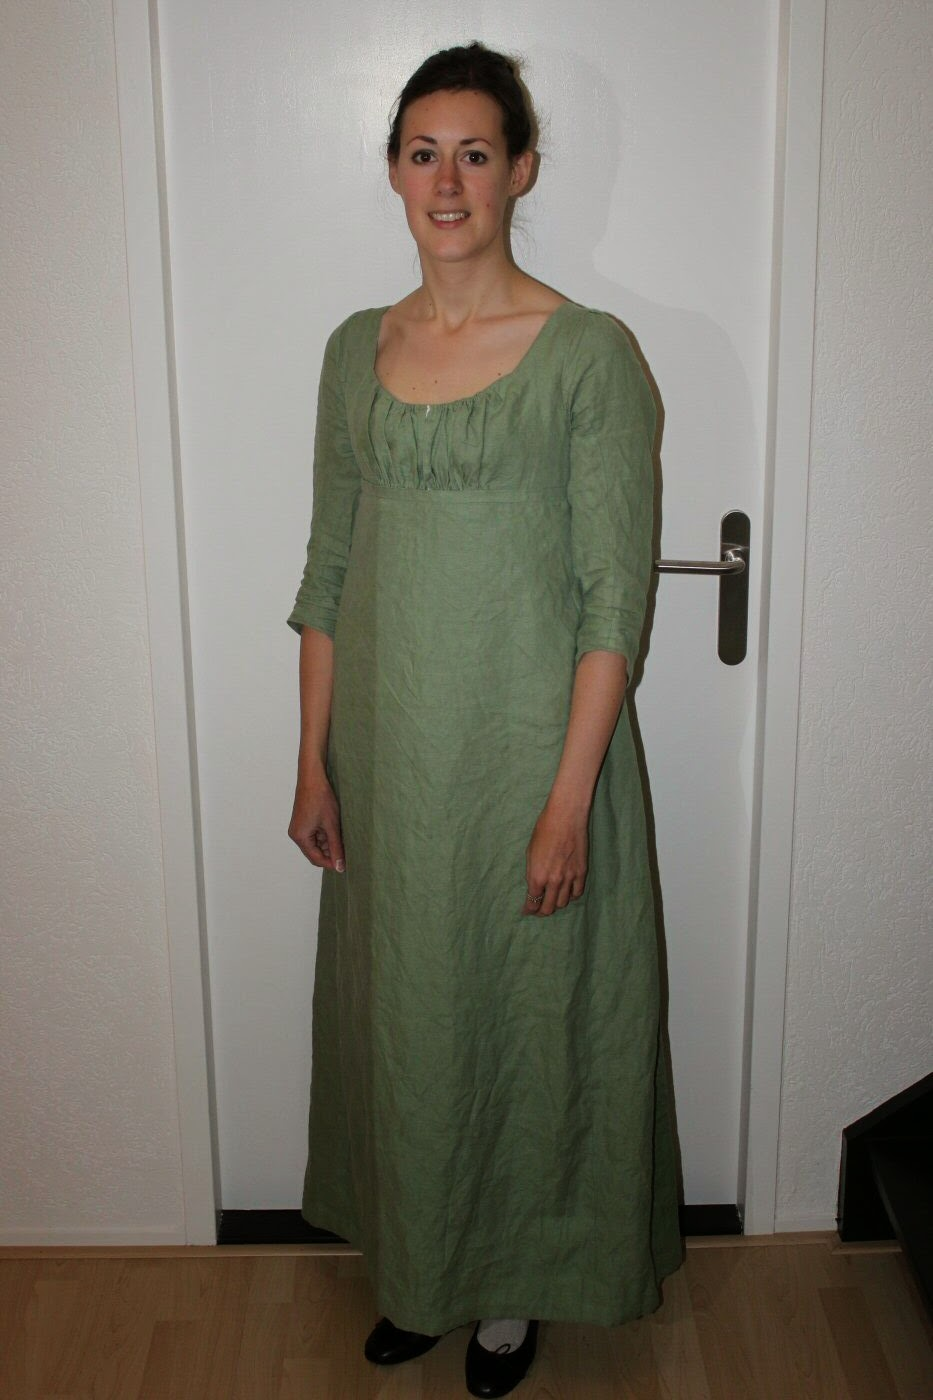 http://misshendrie.blogspot.nl/2014/12/green-linen-regency-dress.html